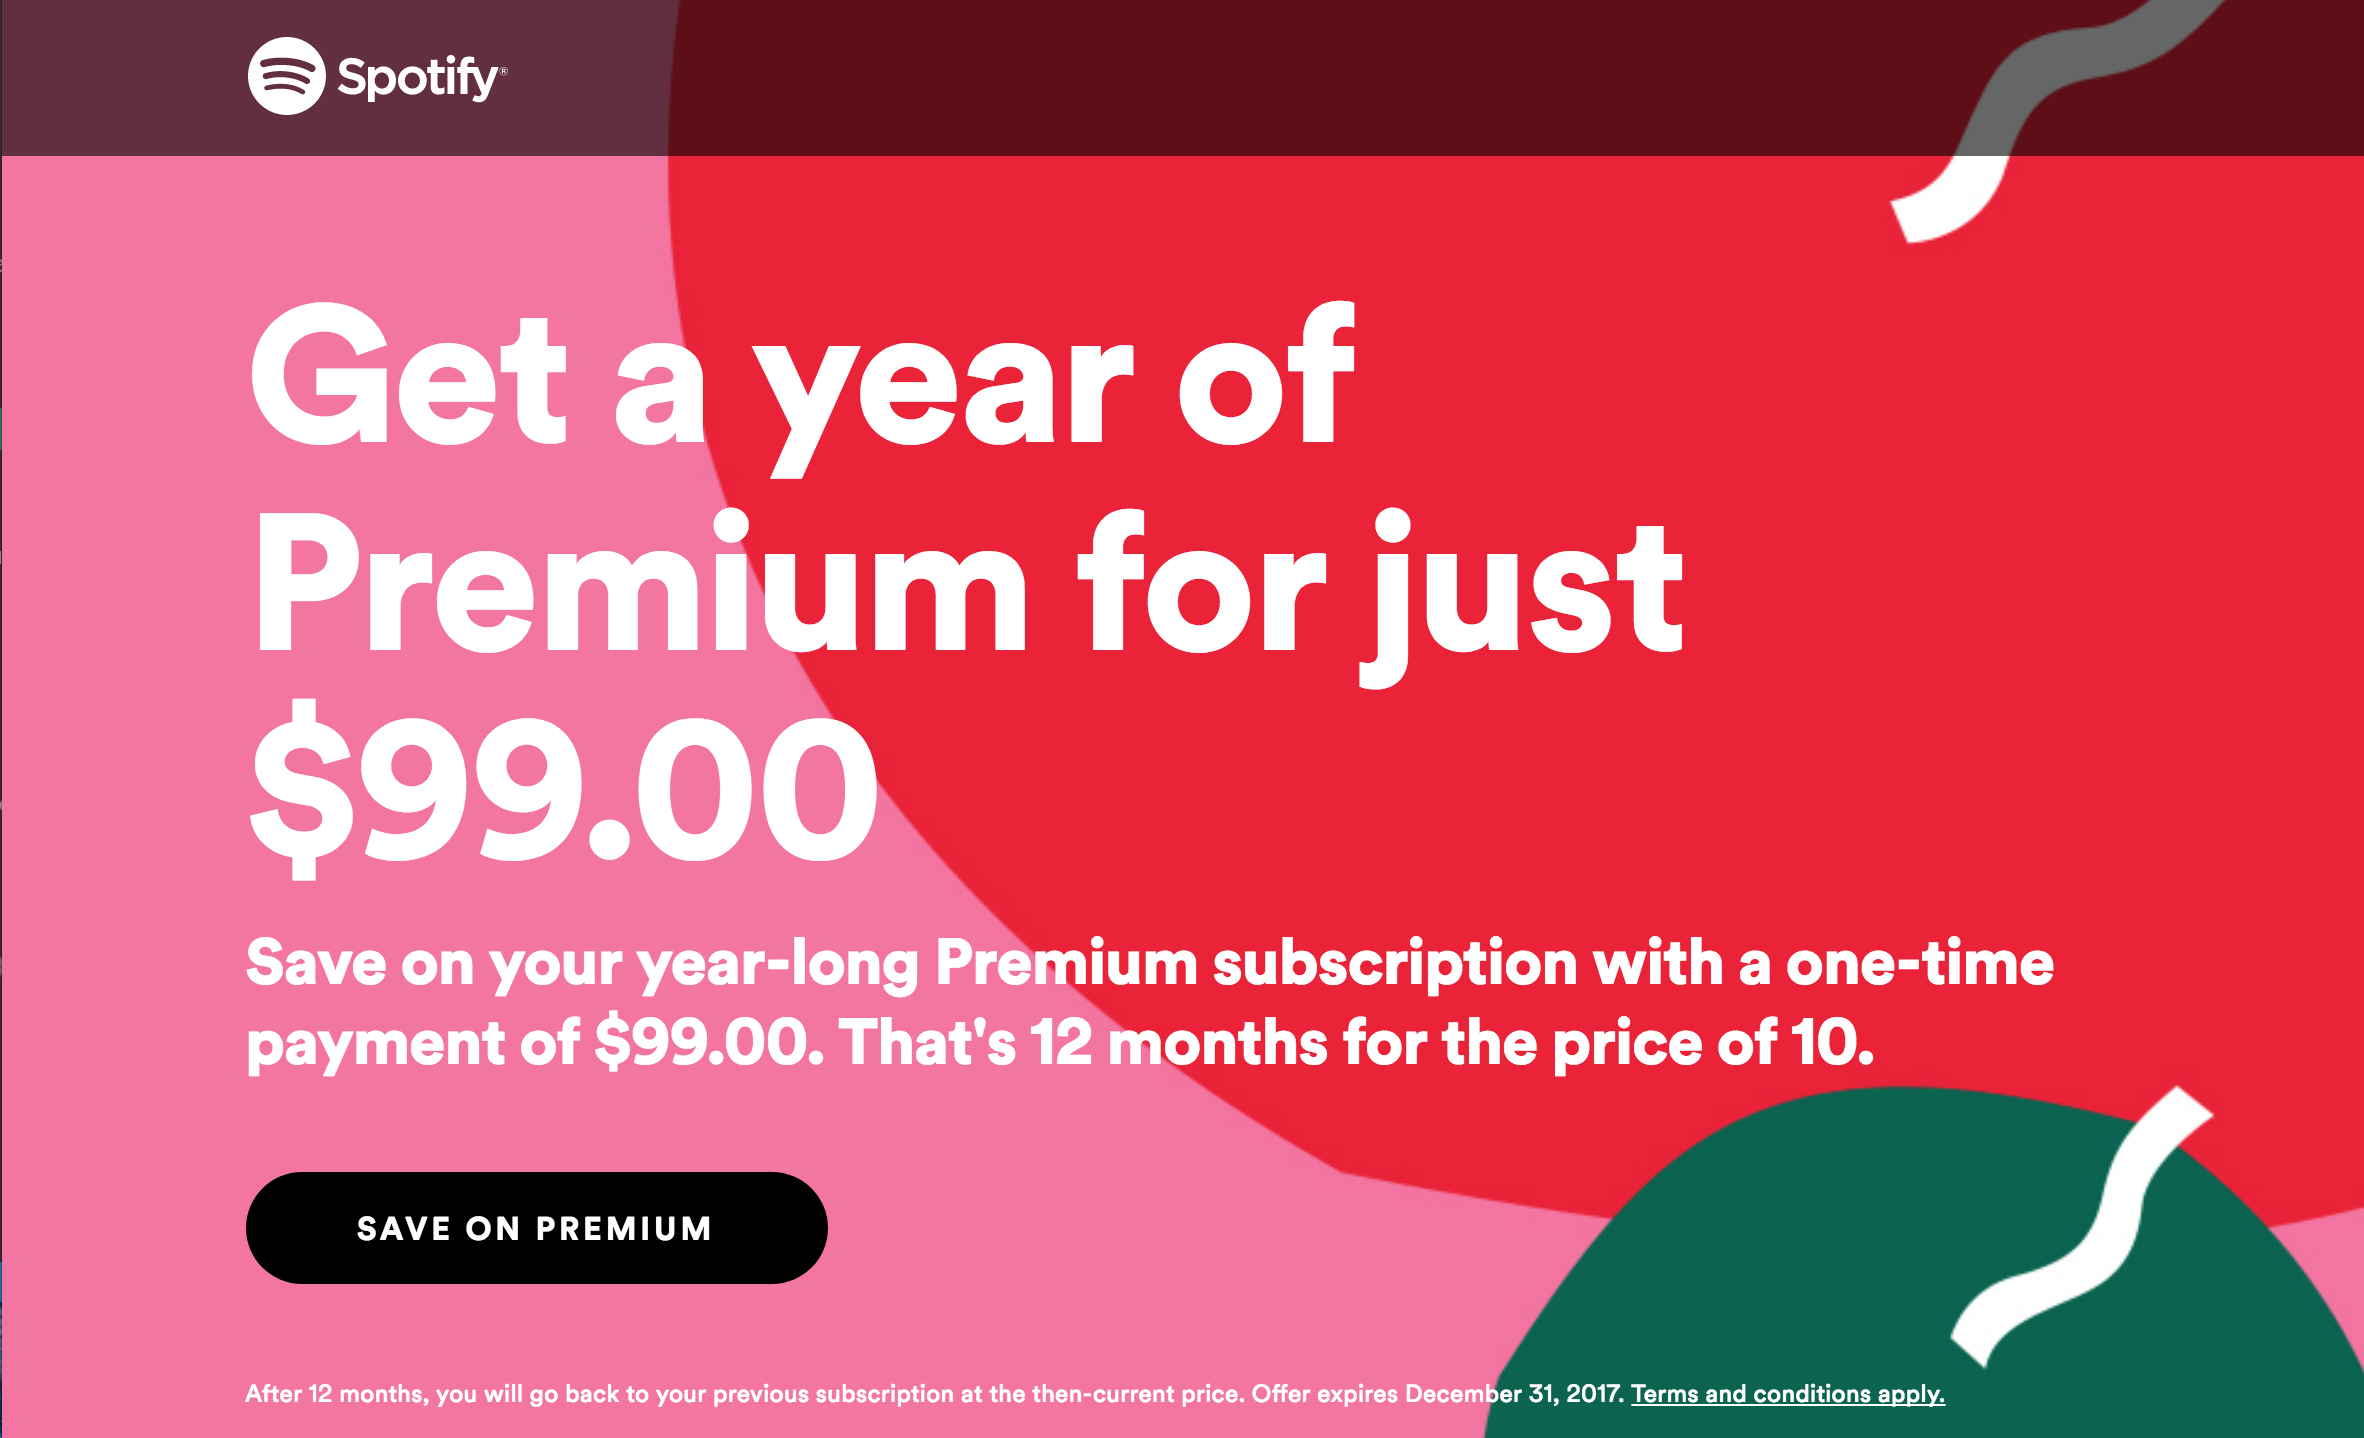 Miss Groove? Grab Spotify Premium for only $99 for a whole year